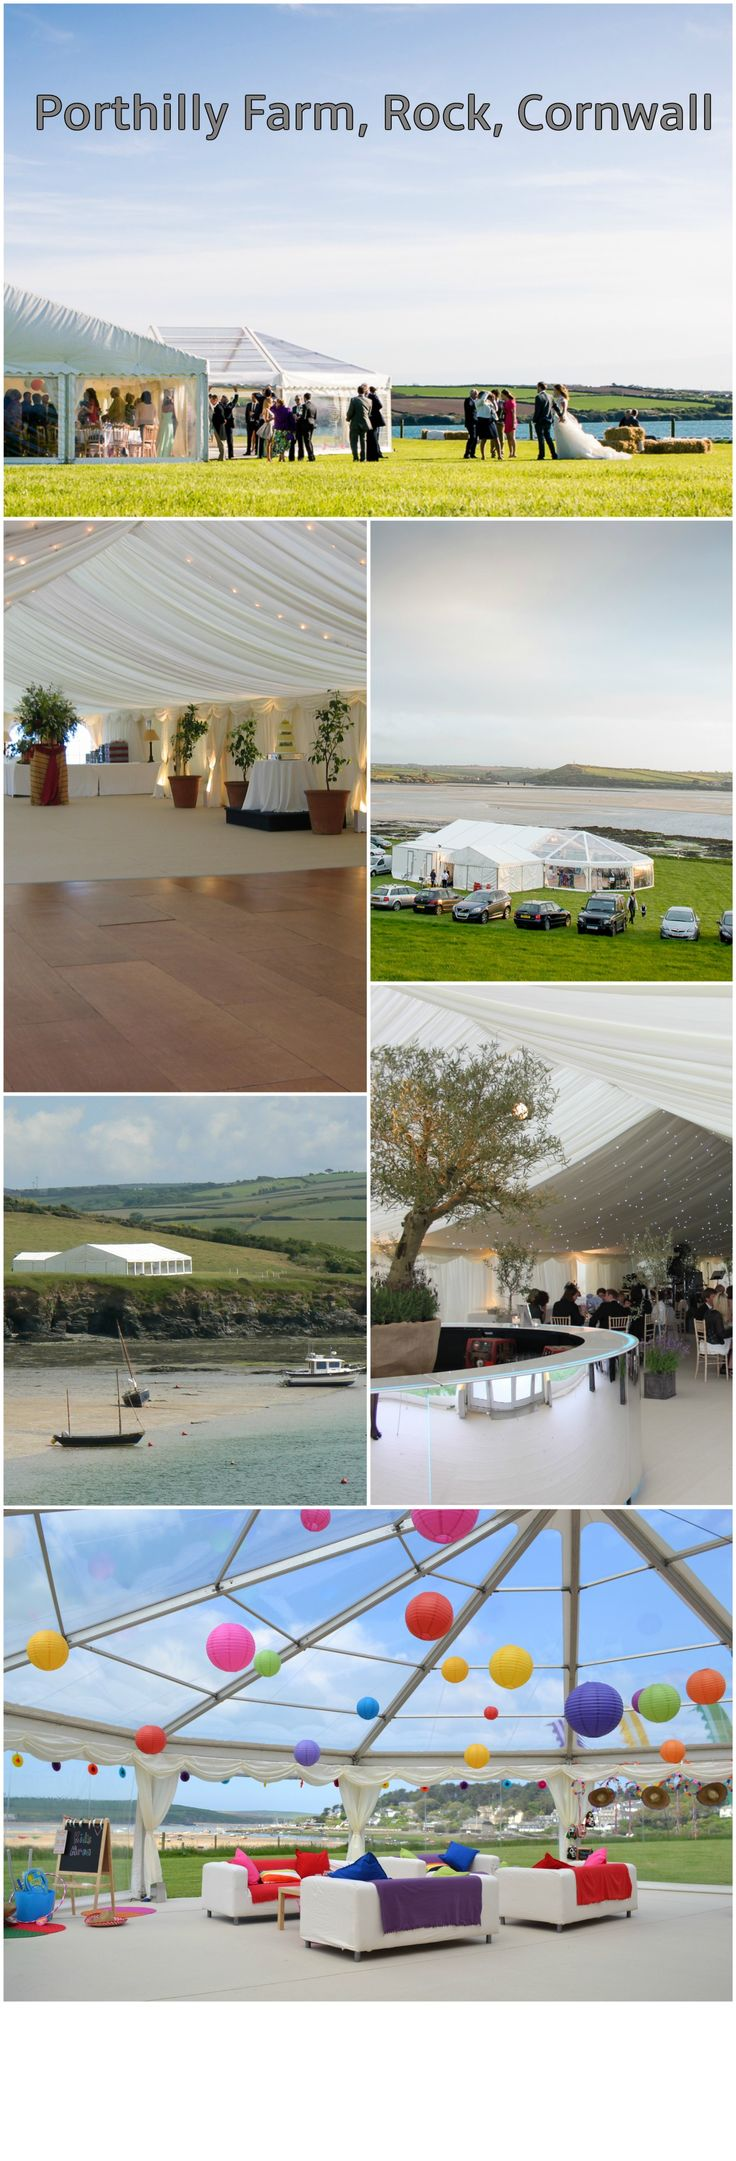 Porthilly Farm Rock Cornwall Is A Beautiful Marquee Wedding Venue With Waterfront Views Of